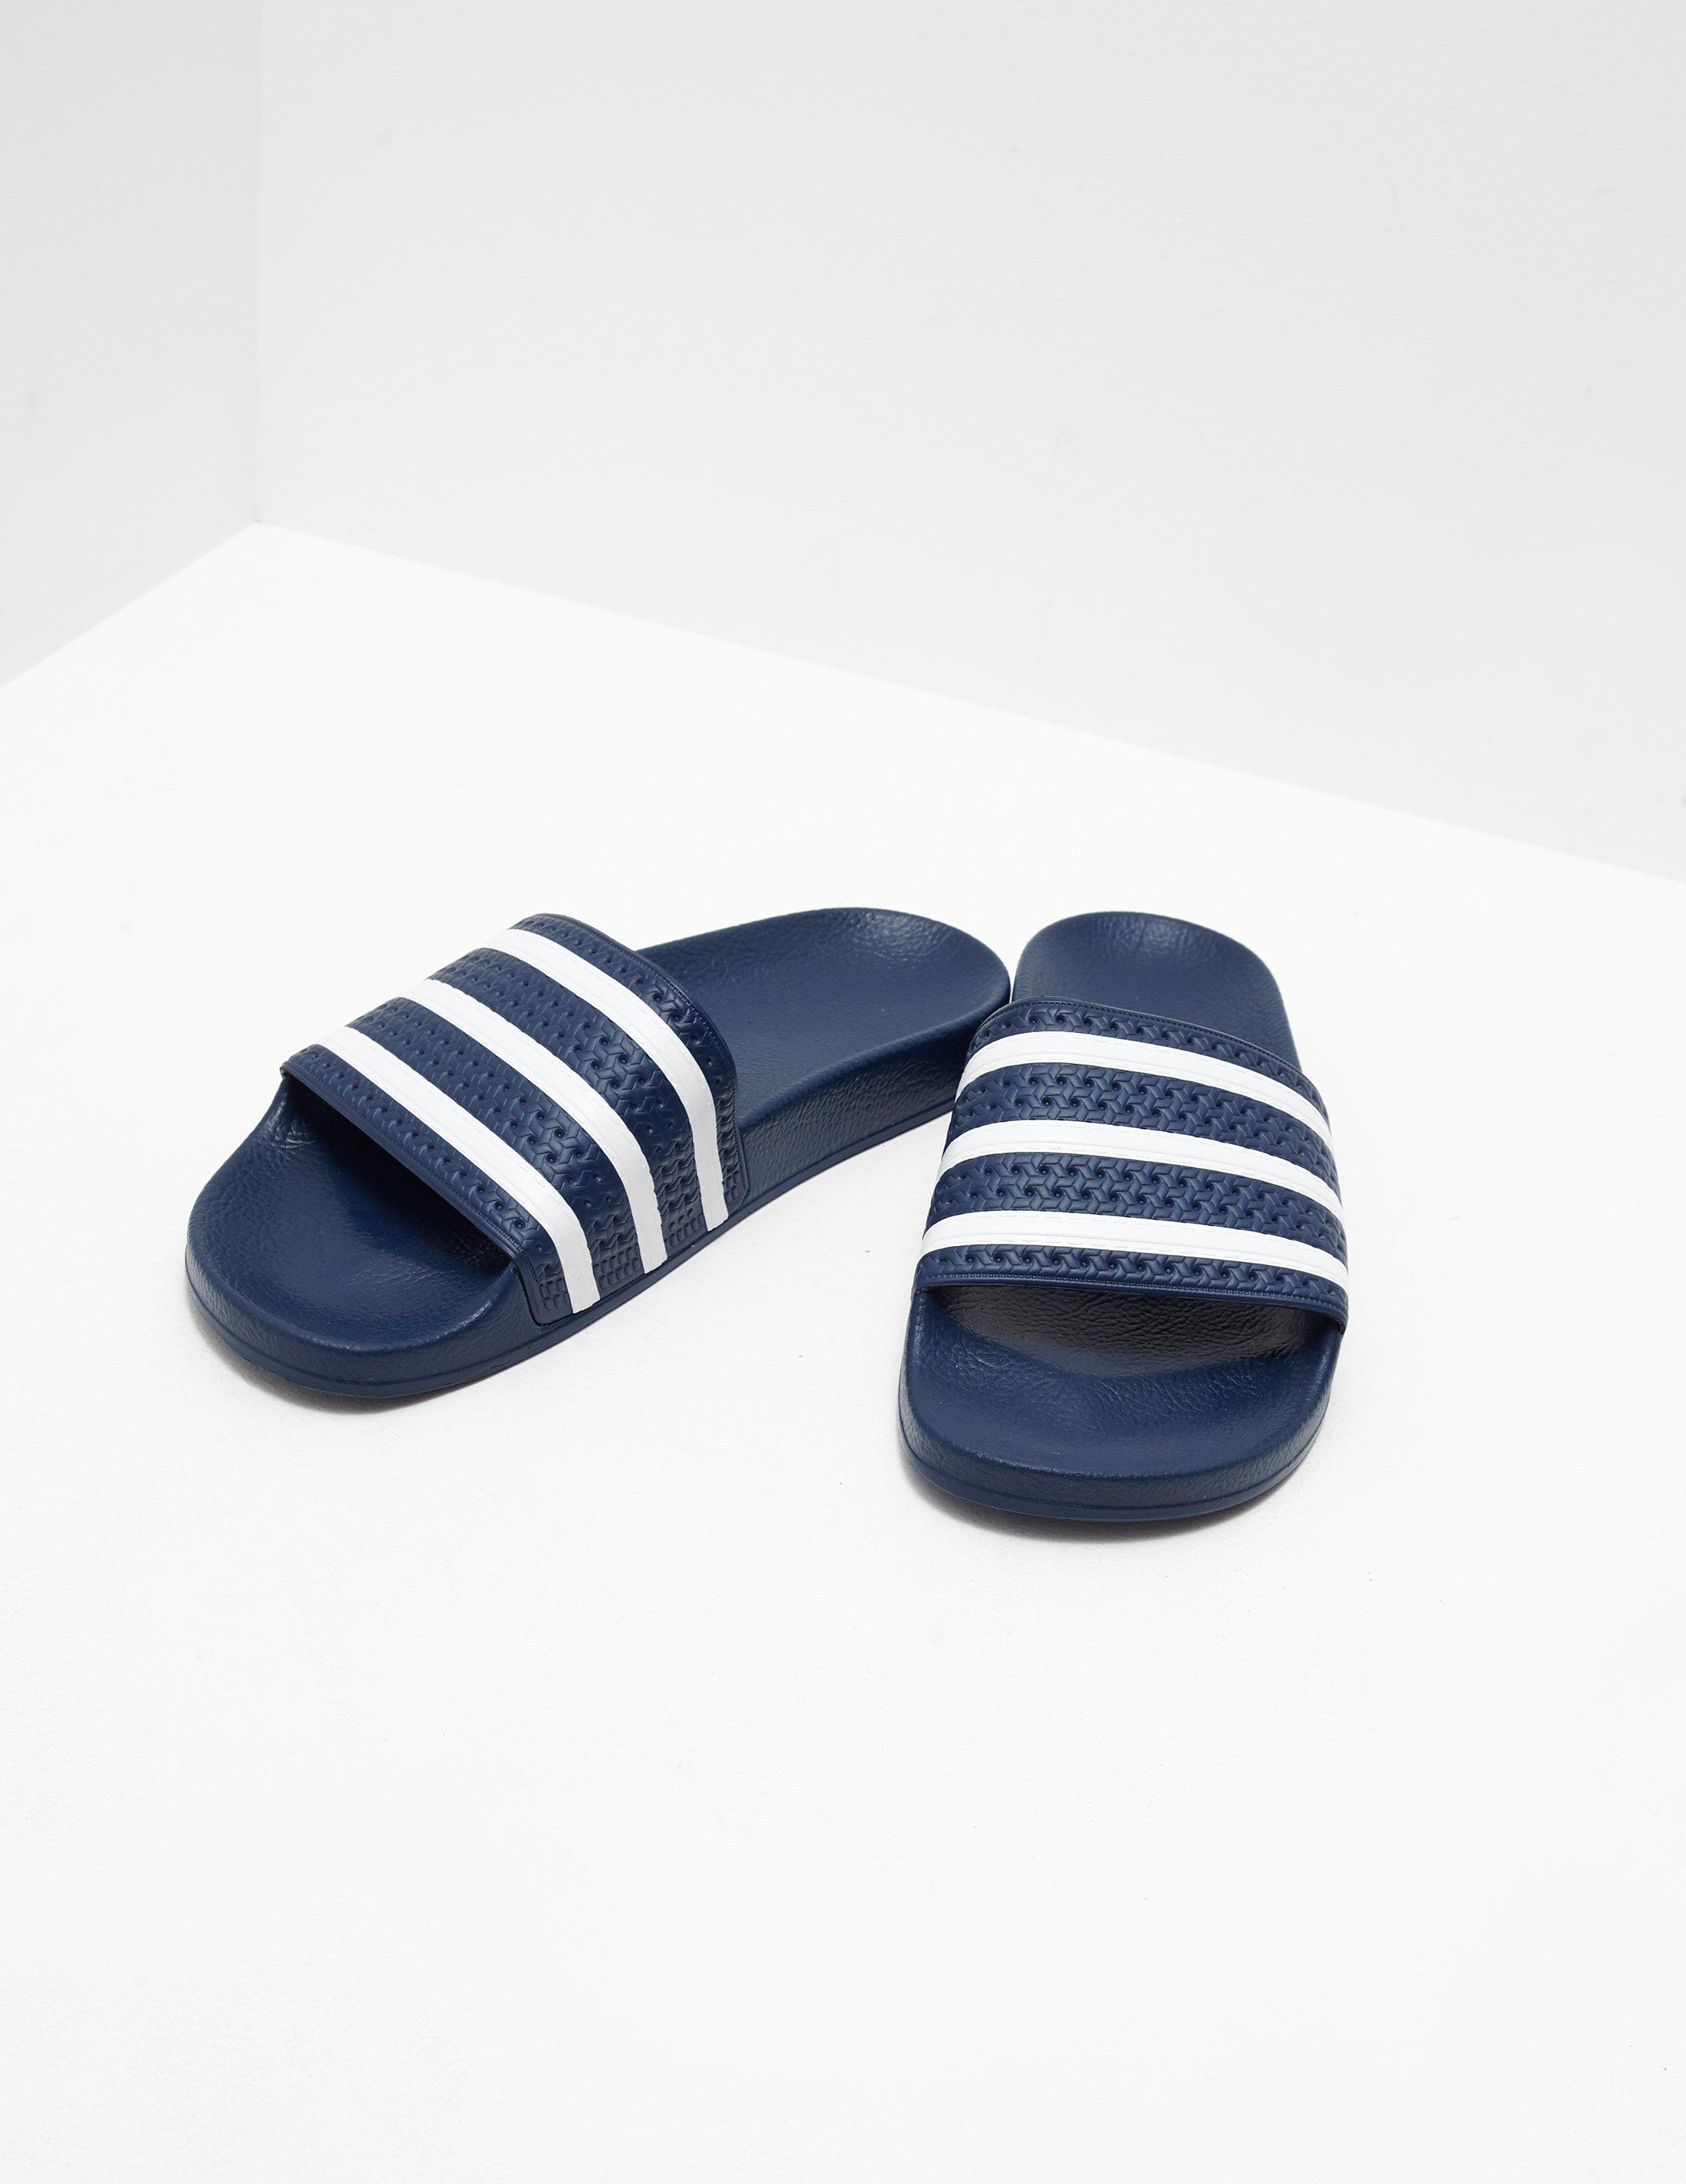 c2db7e4ca3f2 Lyst - adidas Originals Mens Adilette Slides Blue white in Blue for Men